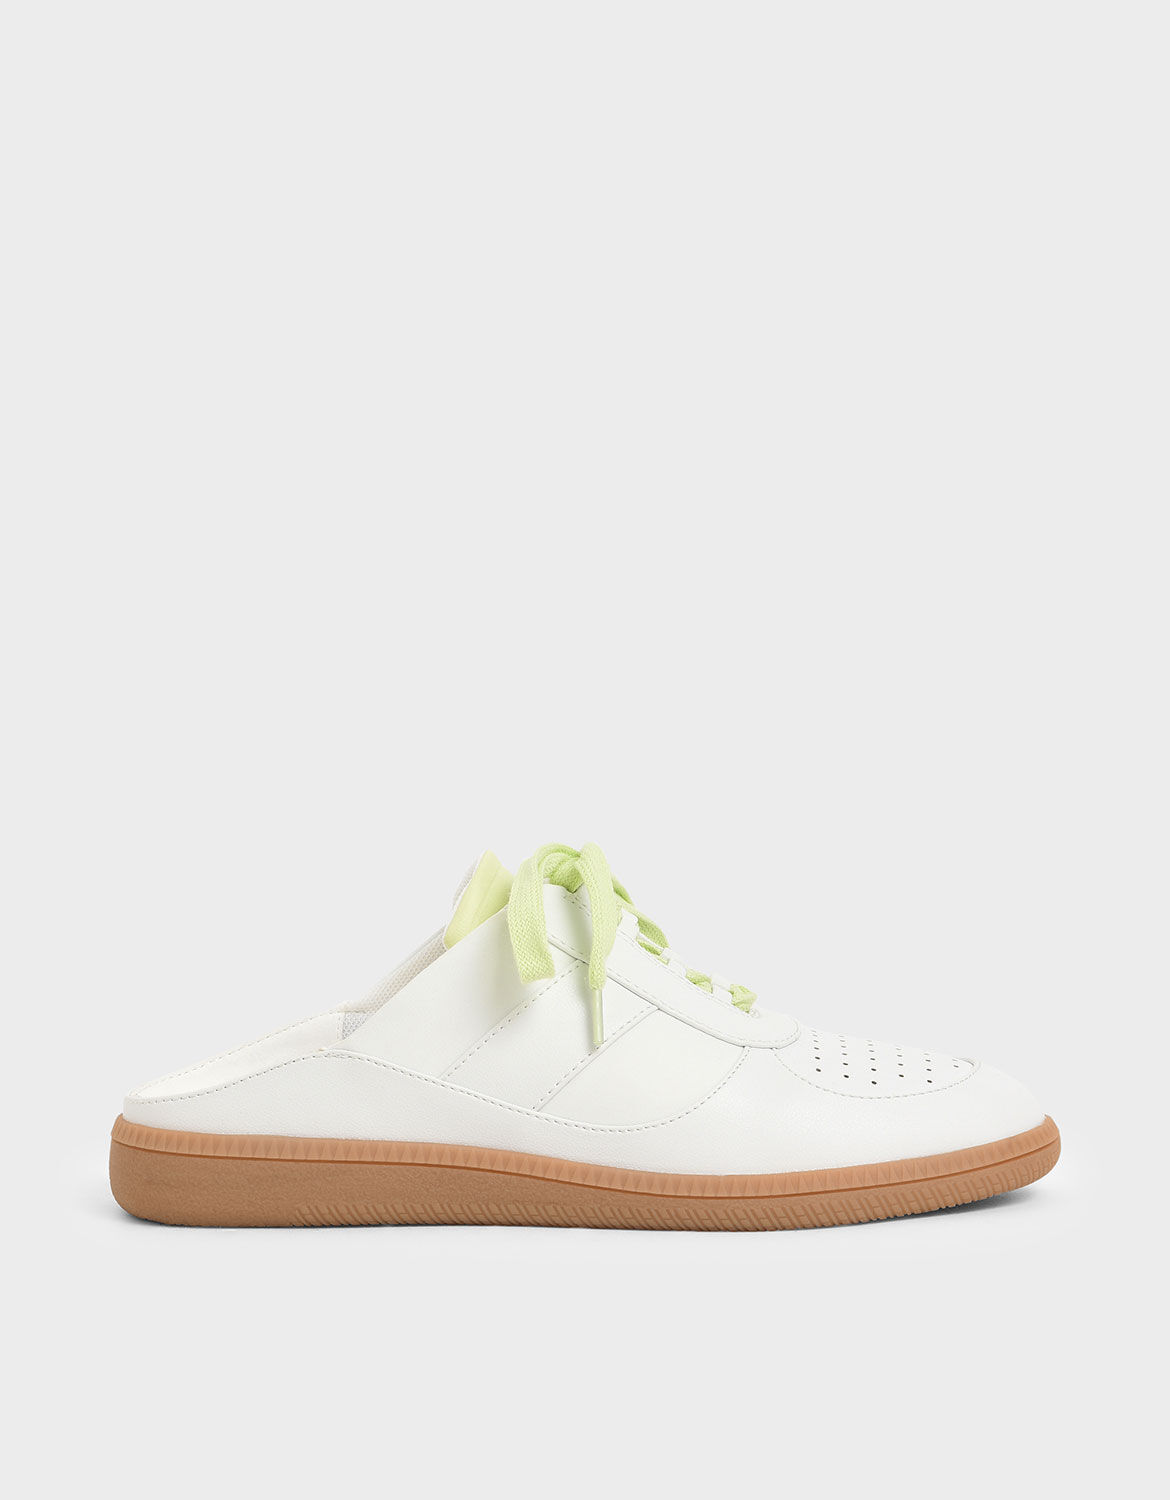 Lace Up Sneaker Mules   CHARLES \u0026 KEITH PH